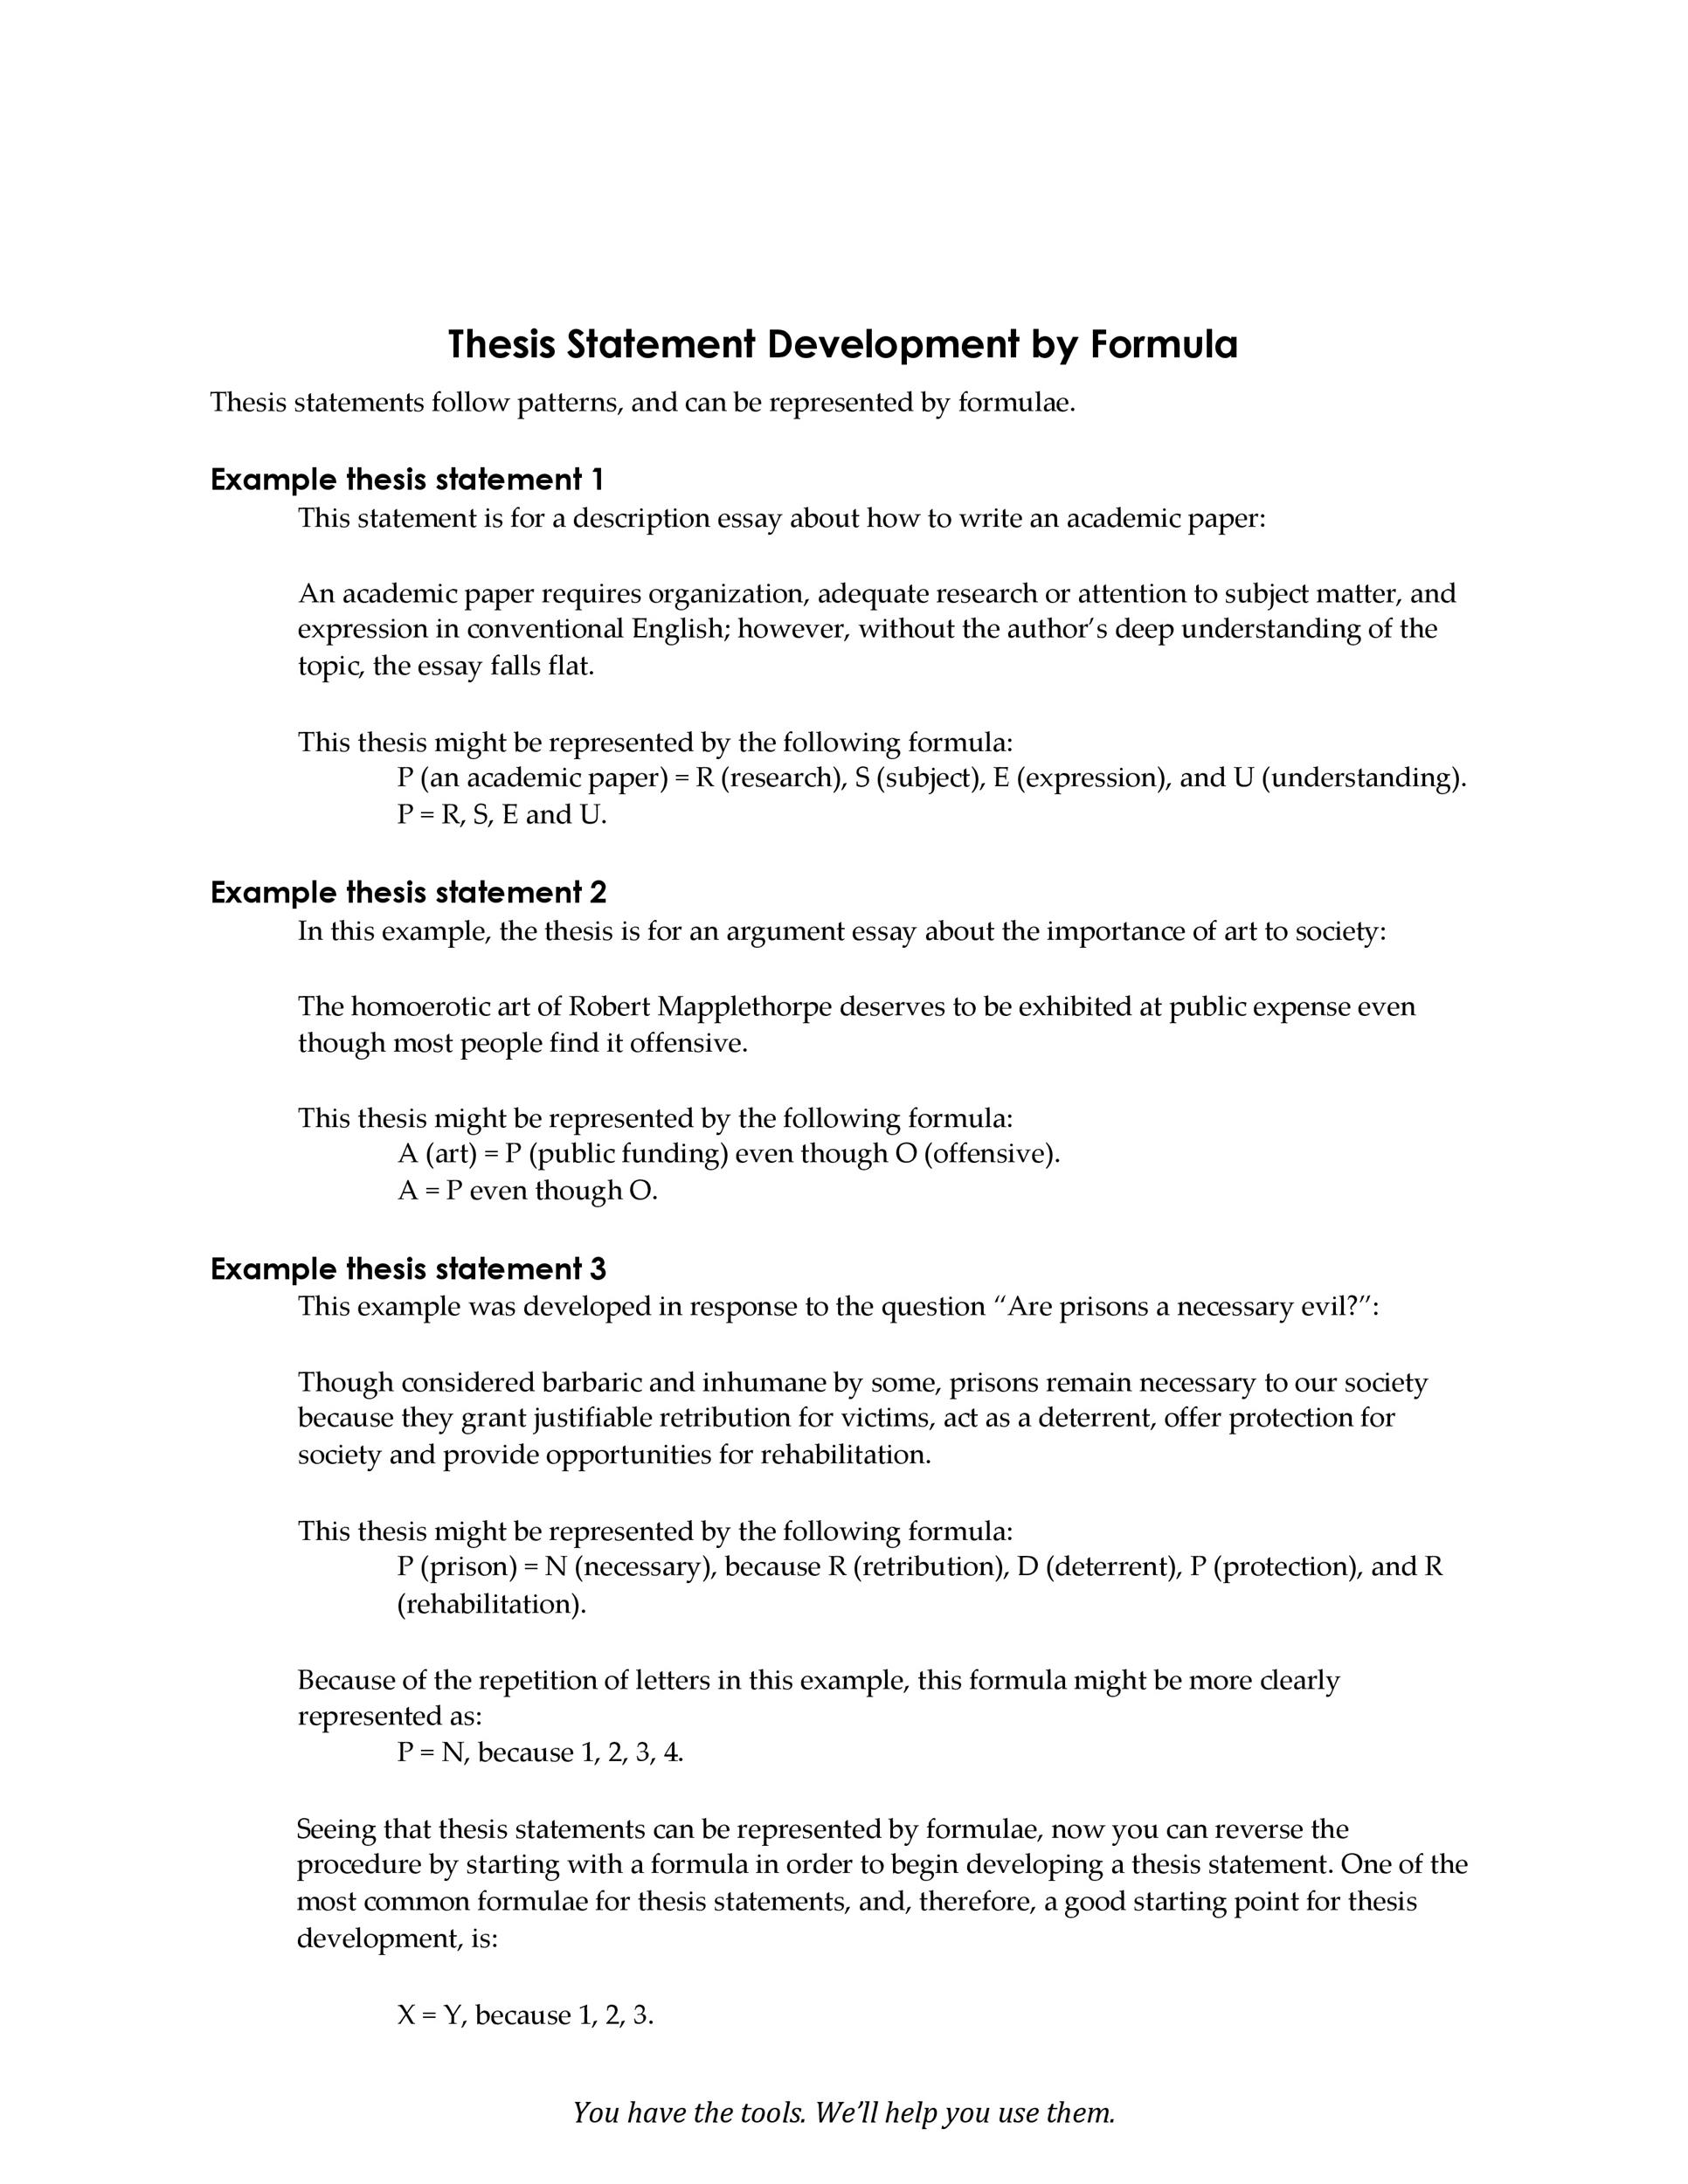 Free thesis statement template 04